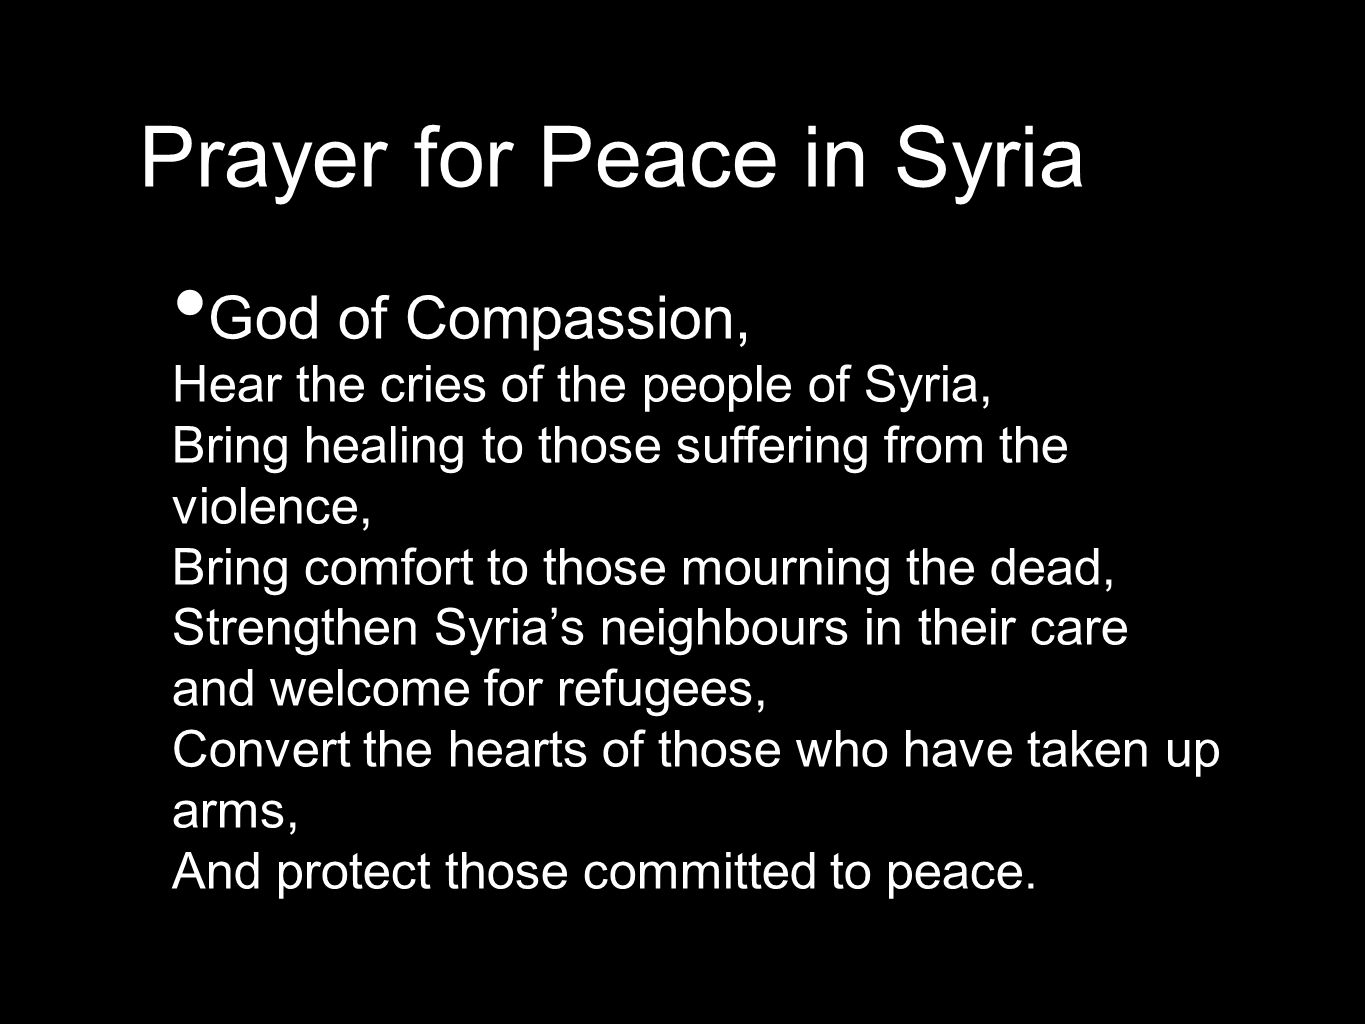 Prayer for Peace in Syria God of Compassion, Hear the cries of the people of Syria, Bring healing to those suffering from the violence, Bring comfort to those mourning the dead, Strengthen Syria's neighbours in their care and welcome for refugees, Convert the hearts of those who have taken up arms, And protect those committed to peace.